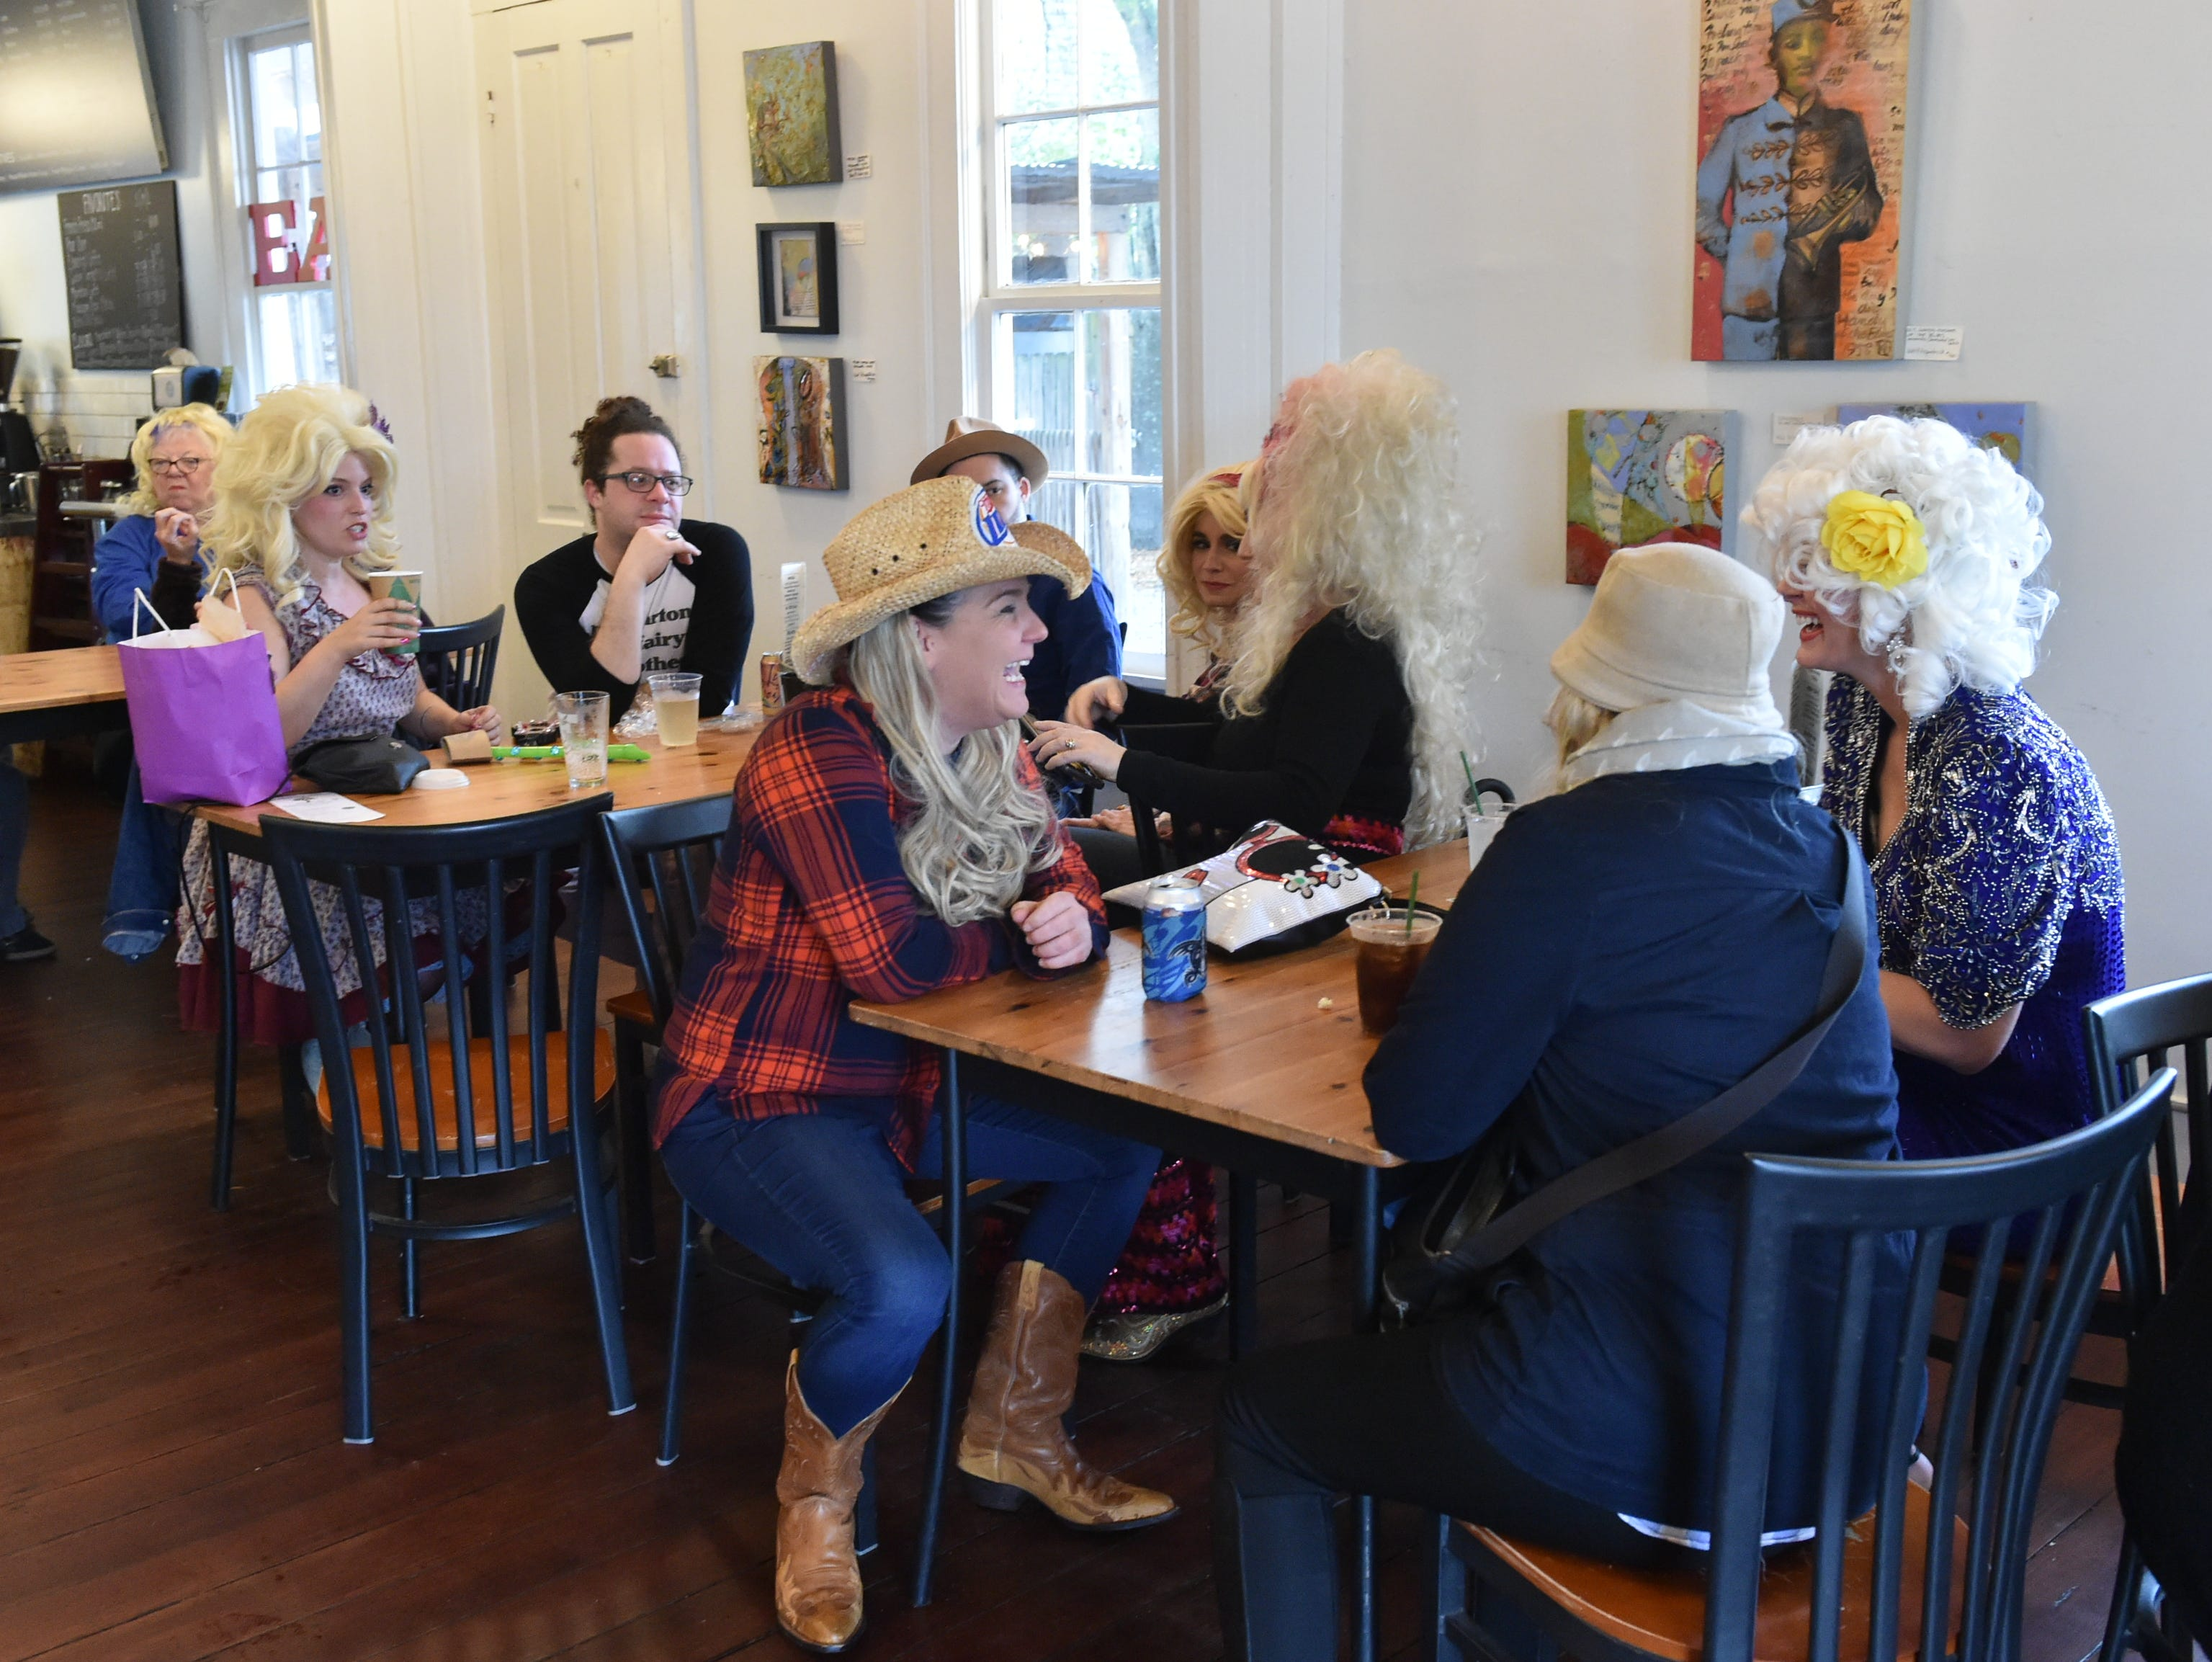 Patrons of the Mockingbird Cafe in Bay St. Louis await the start of the 4th annual Dolly Should festival look-a-like contest held on the steps of the restaurant. Saturday, Jan. 12, 2019.